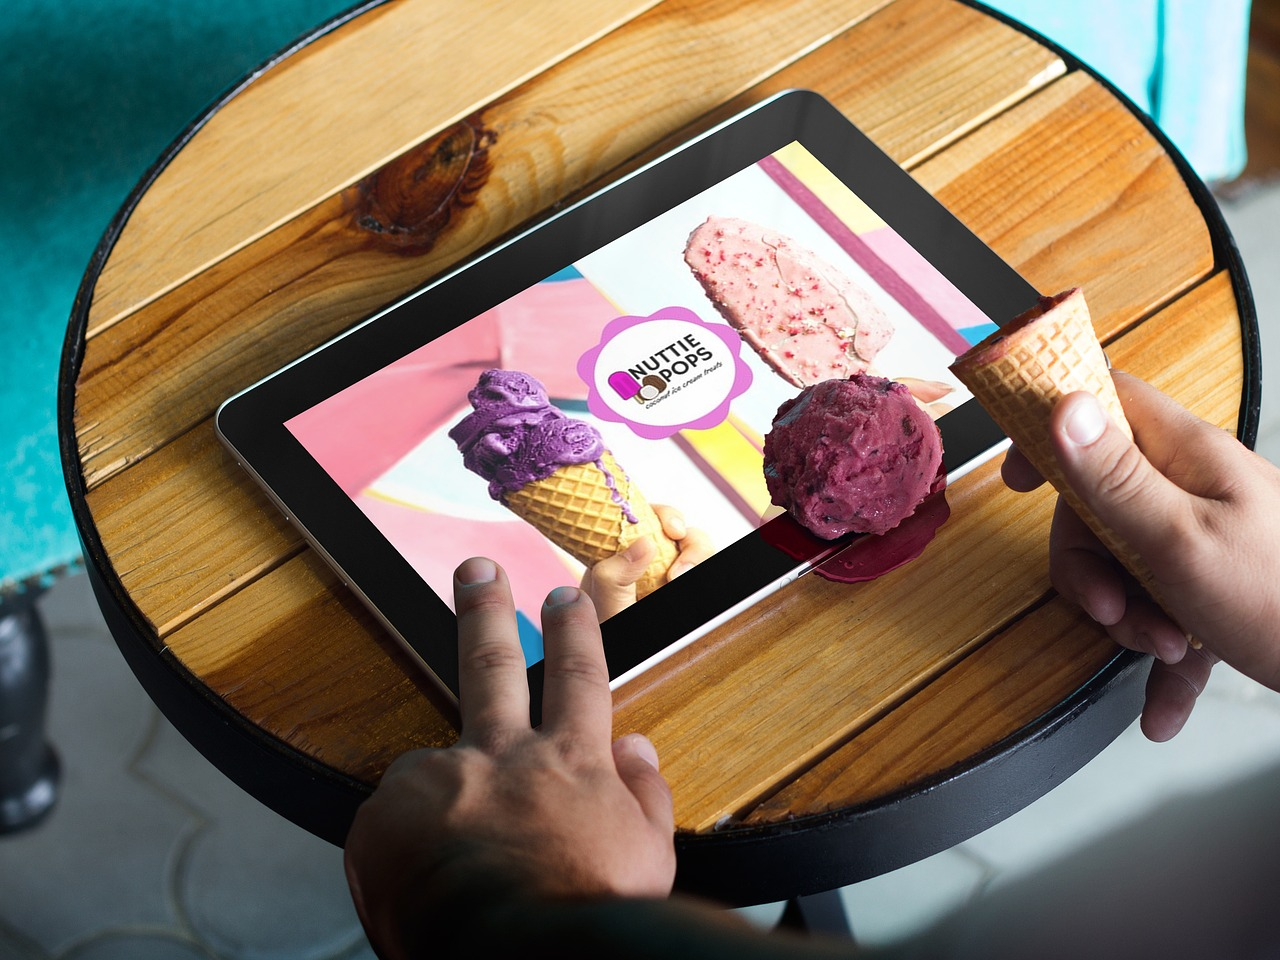 Five Simple Marketing and Promotion Tips to help during COVID-19 - A tablet user drops their ice cream onto a digital advertisement for the ice cream